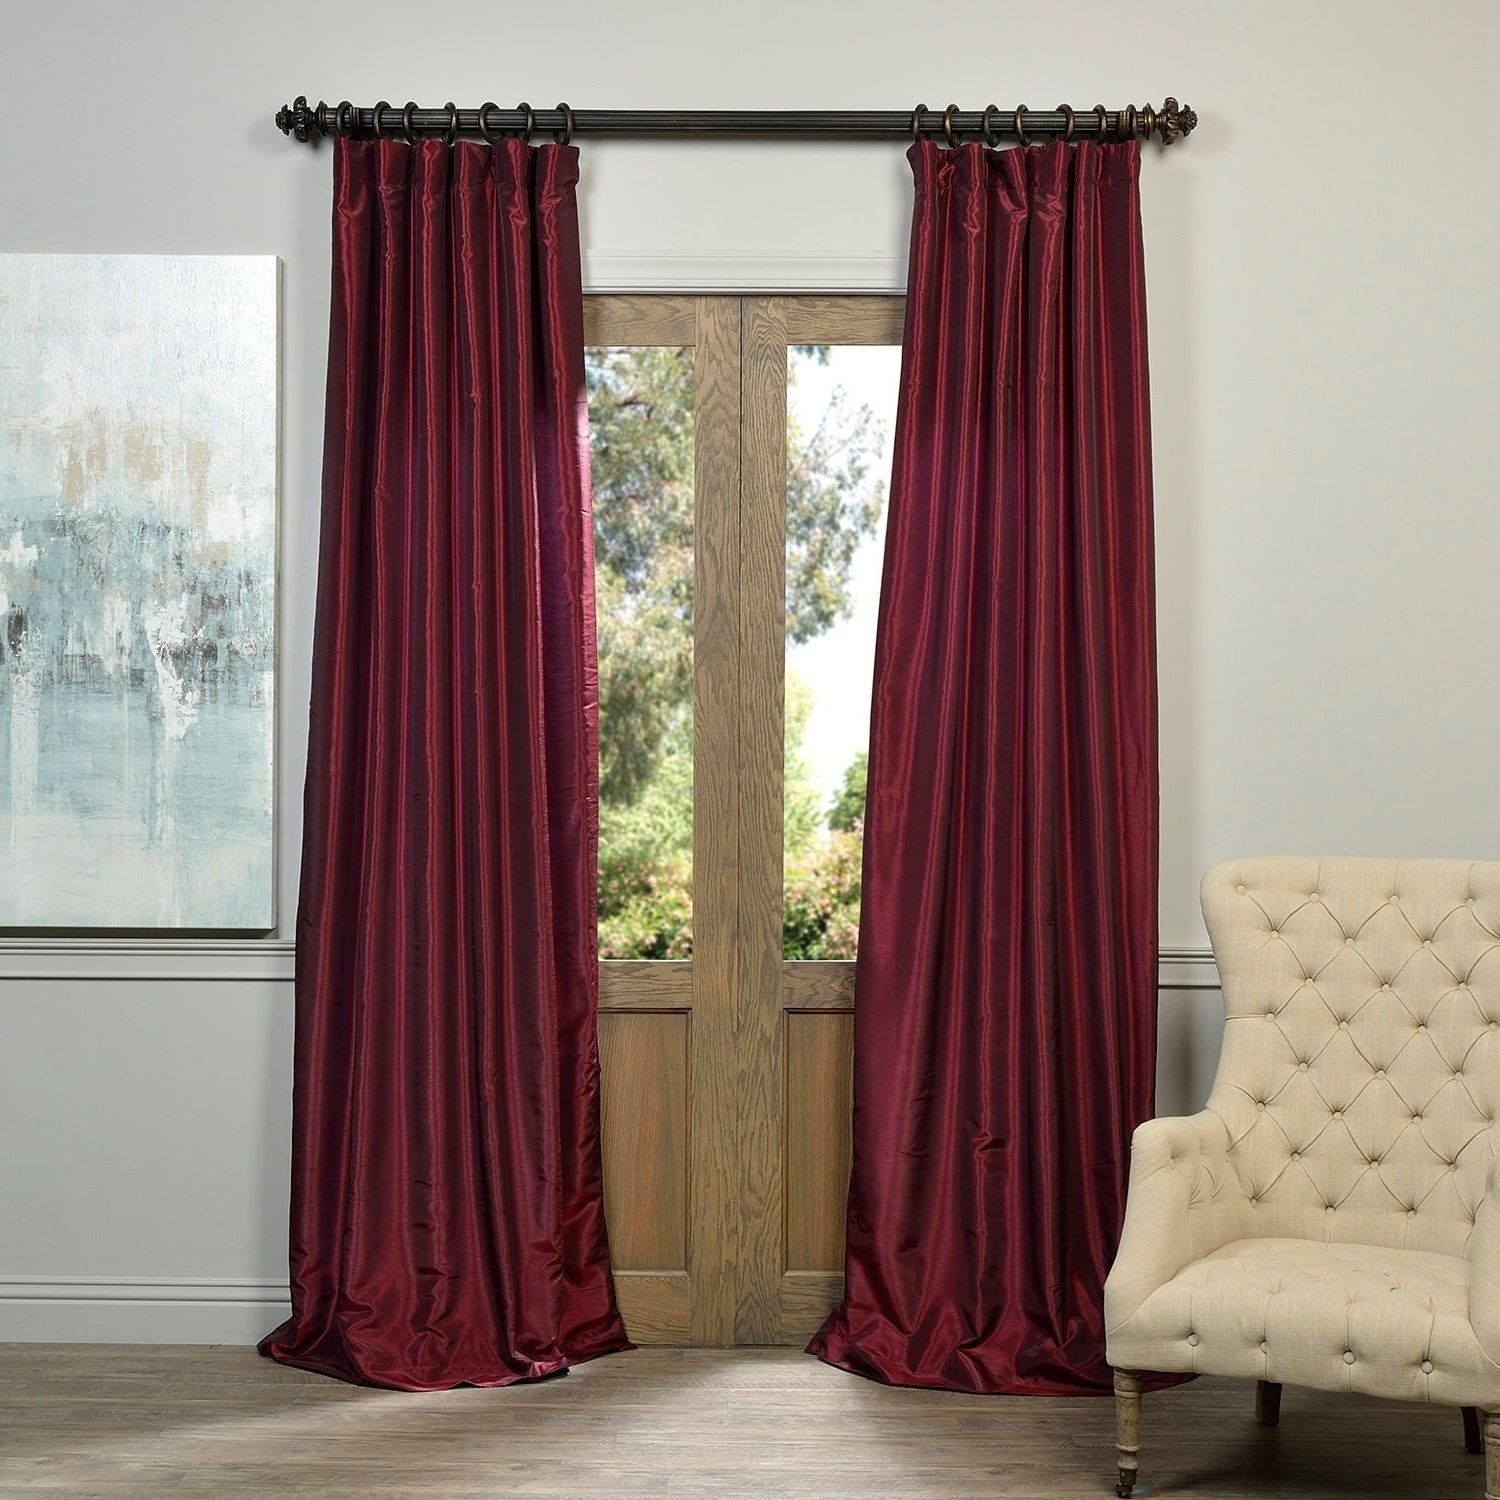 1 Piece 120 Inch Ruby Vintage Textured Faux Dupioni Silk Inside Vintage Textured Faux Dupioni Silk Curtain Panels (Gallery 10 of 30)